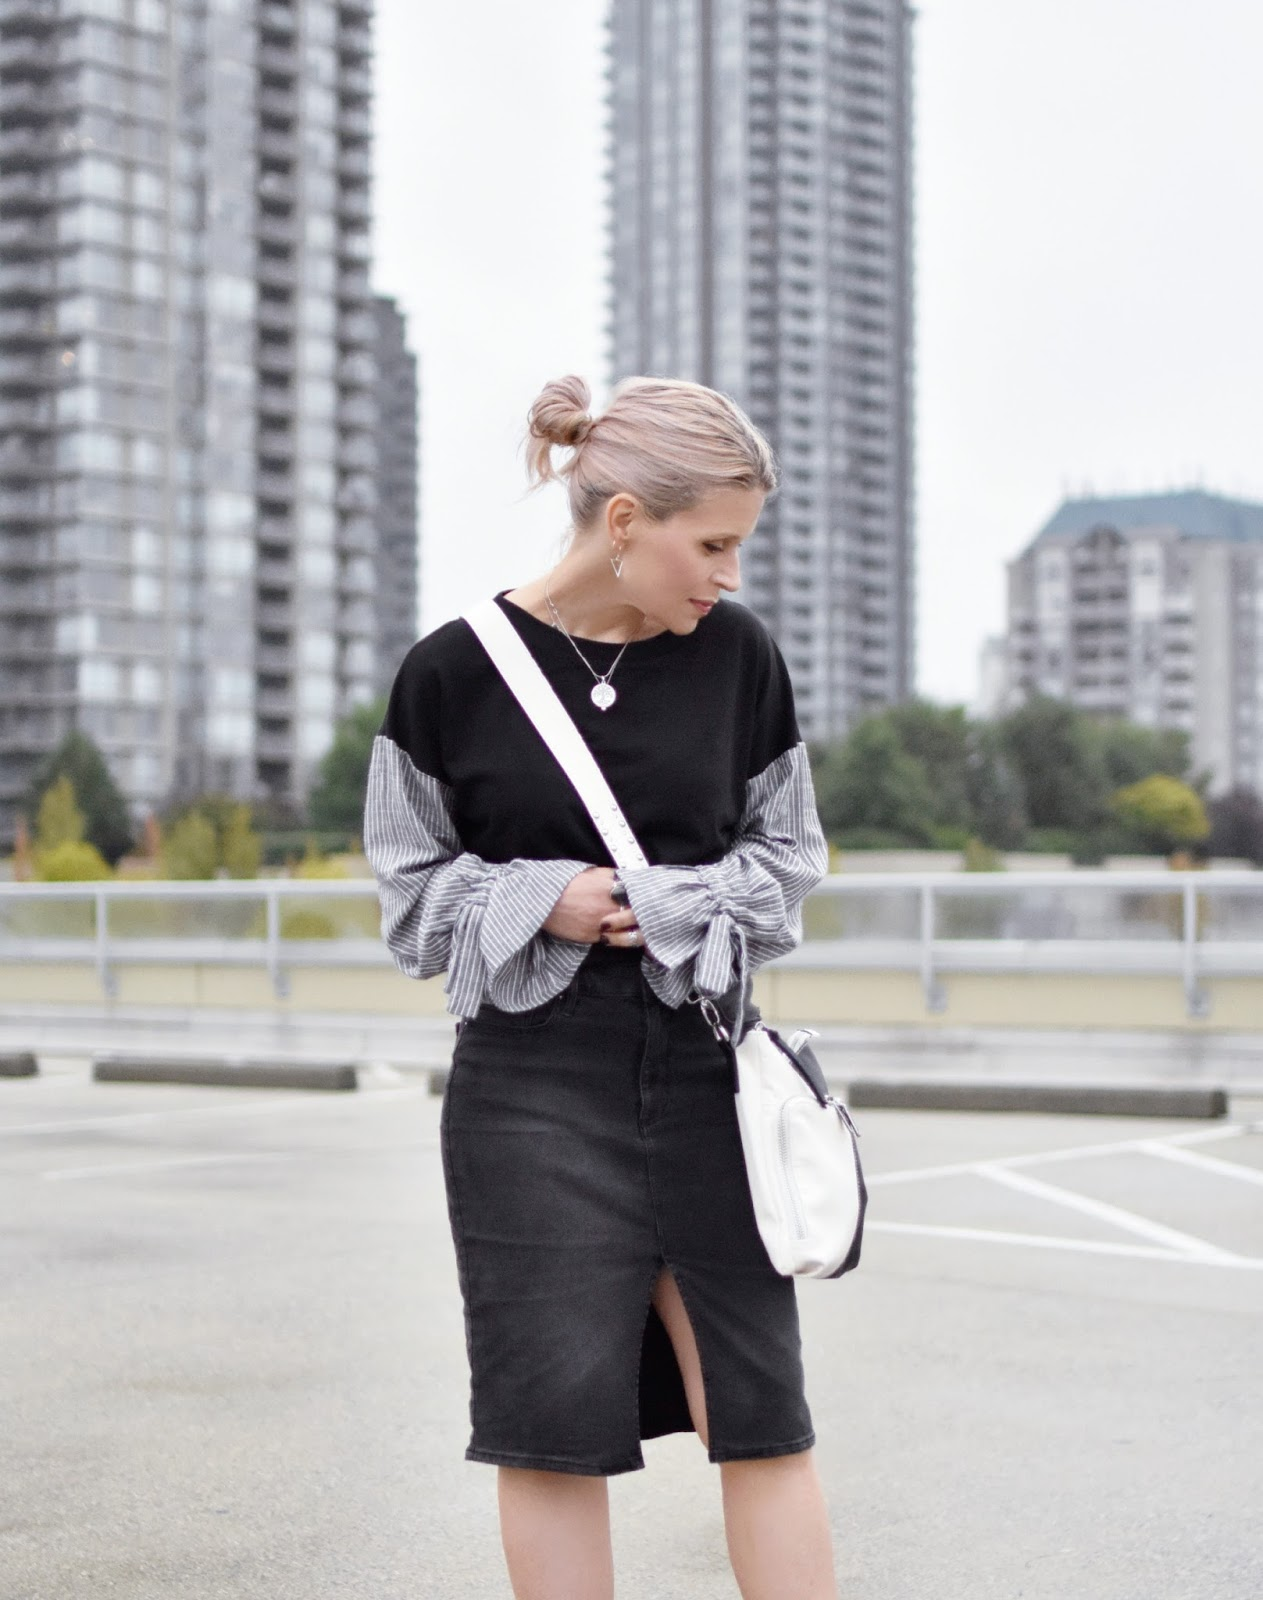 Monika Faulkner outfit inspiration - black sweatshirt with mixed media sleeves, black denim skirt, black and white cross-body bag